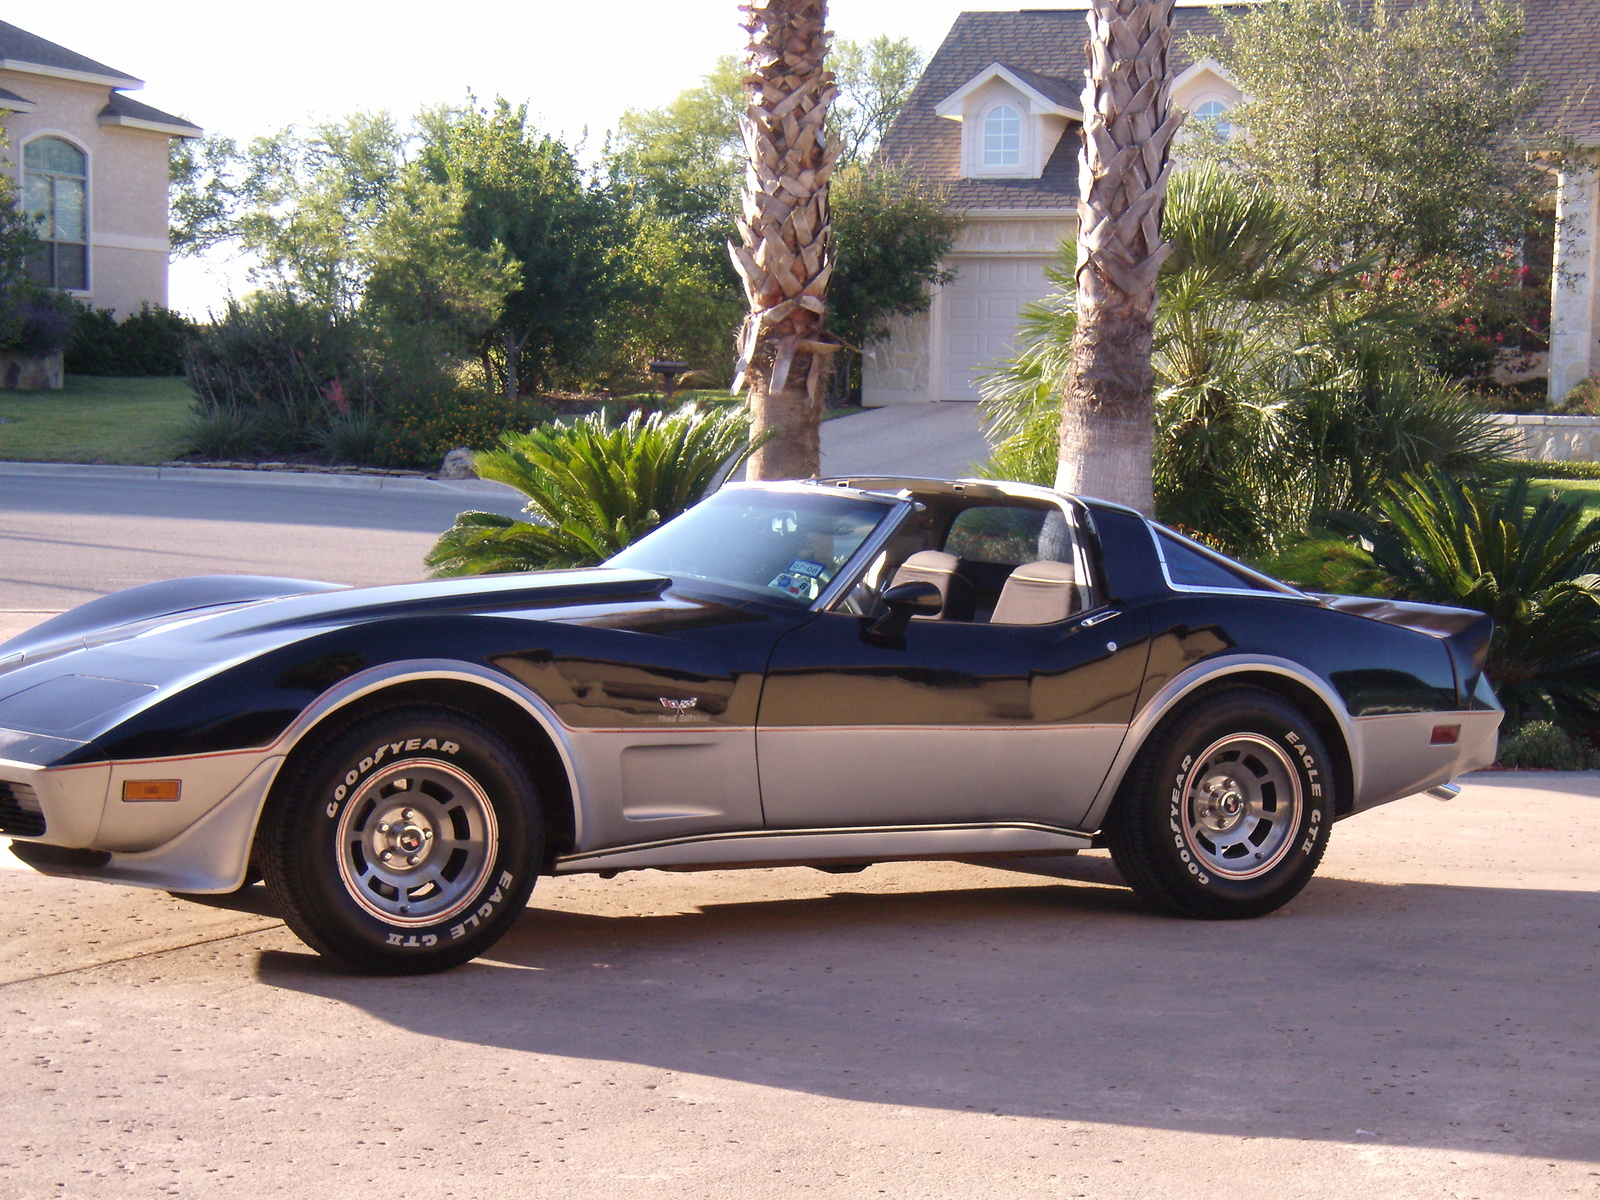 year to year, body style? - CorvetteForum - Chevrolet Corvette Forum Discussion